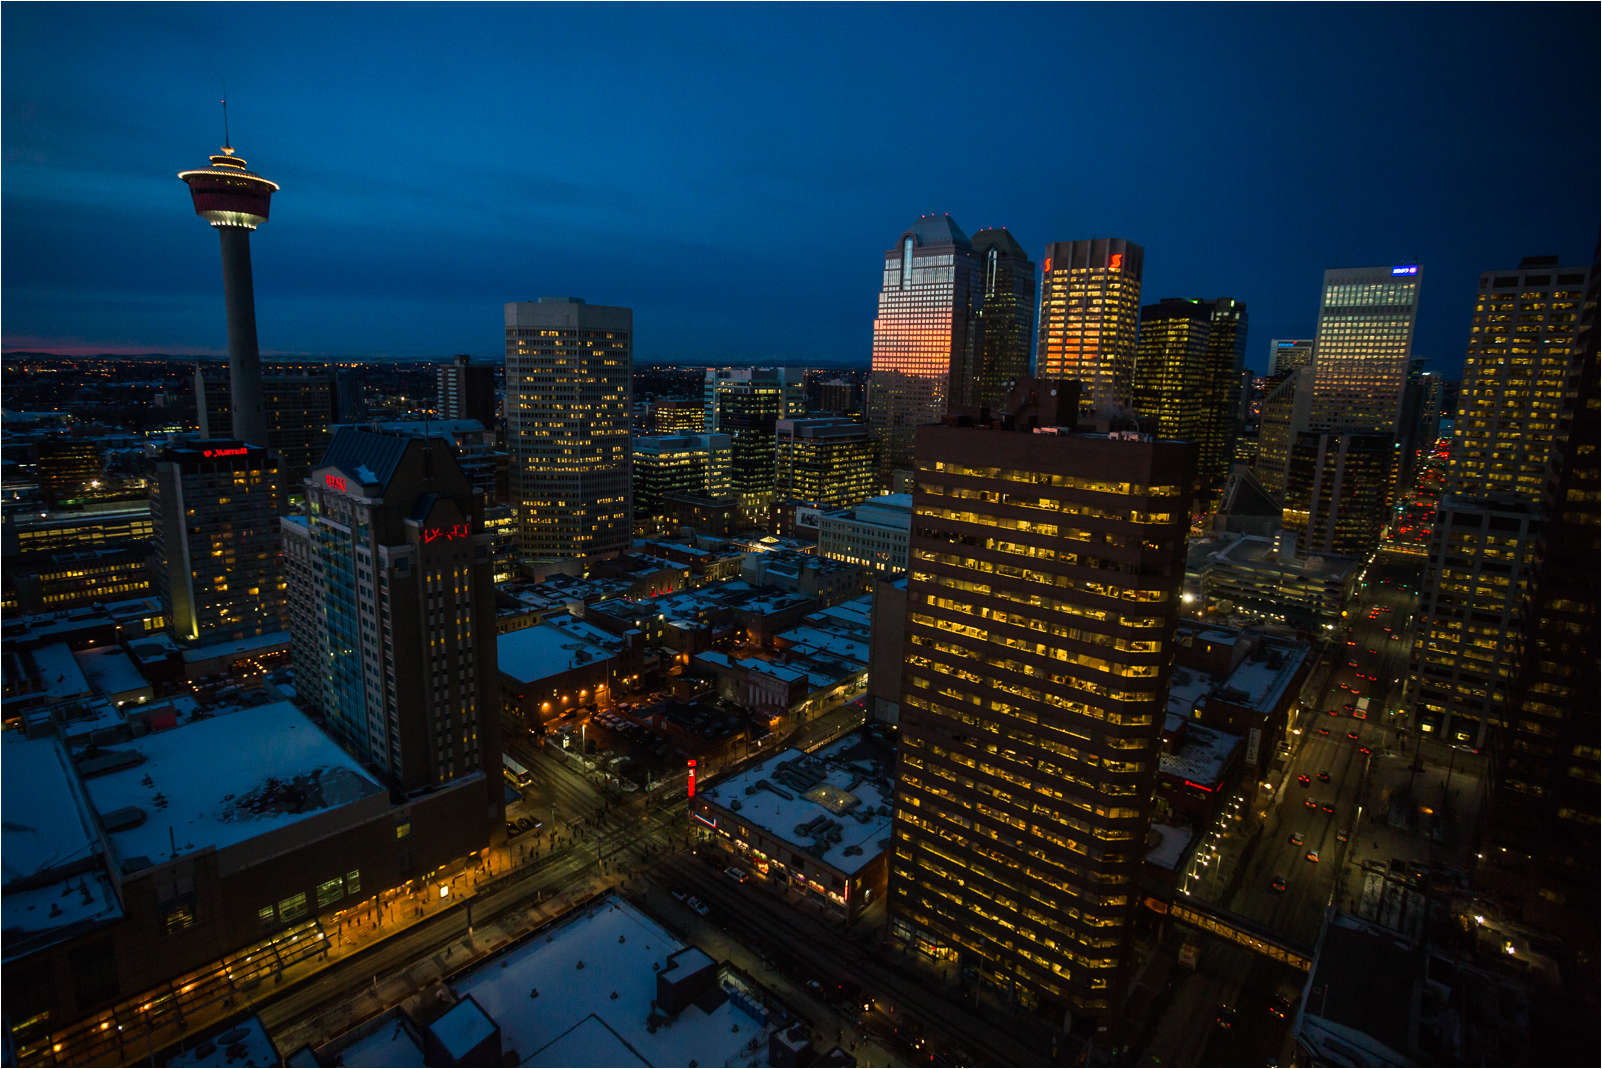 Calgary's cityscape at dawn - 2013 © Christopher Martin